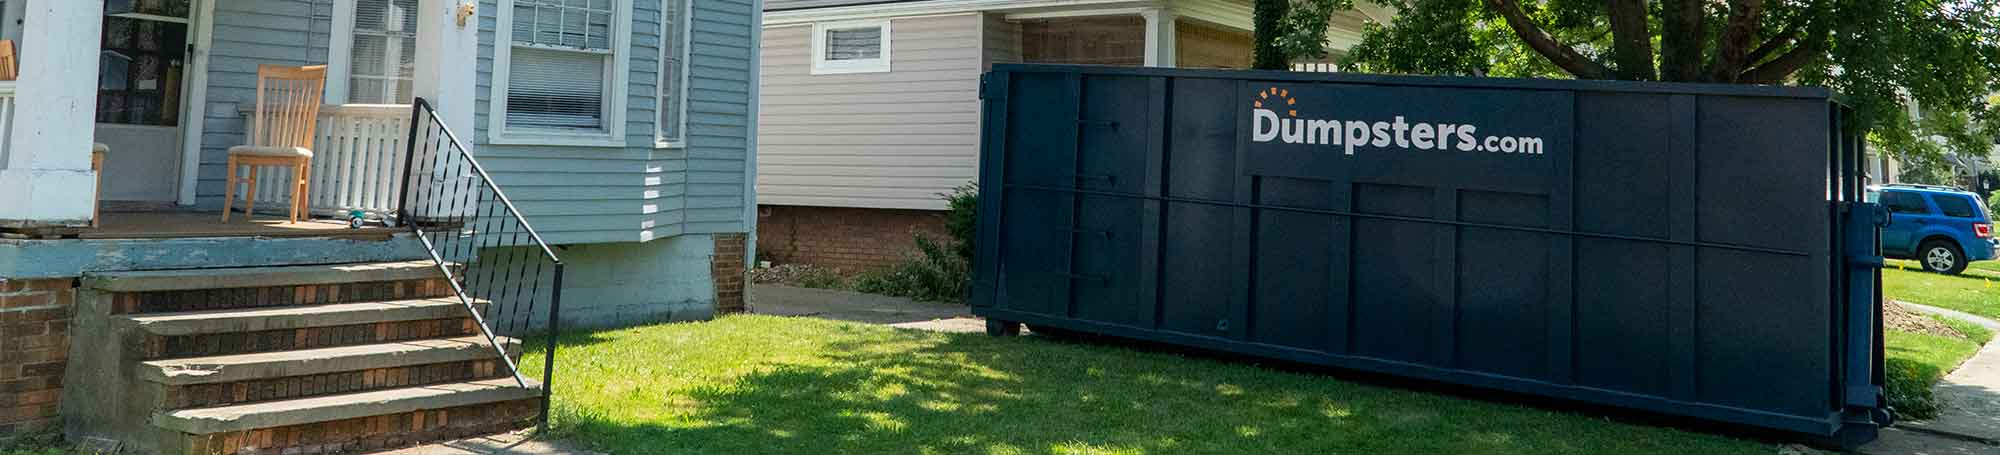 Blue Roll Off Dumpster in Driveway Next to Blue House.